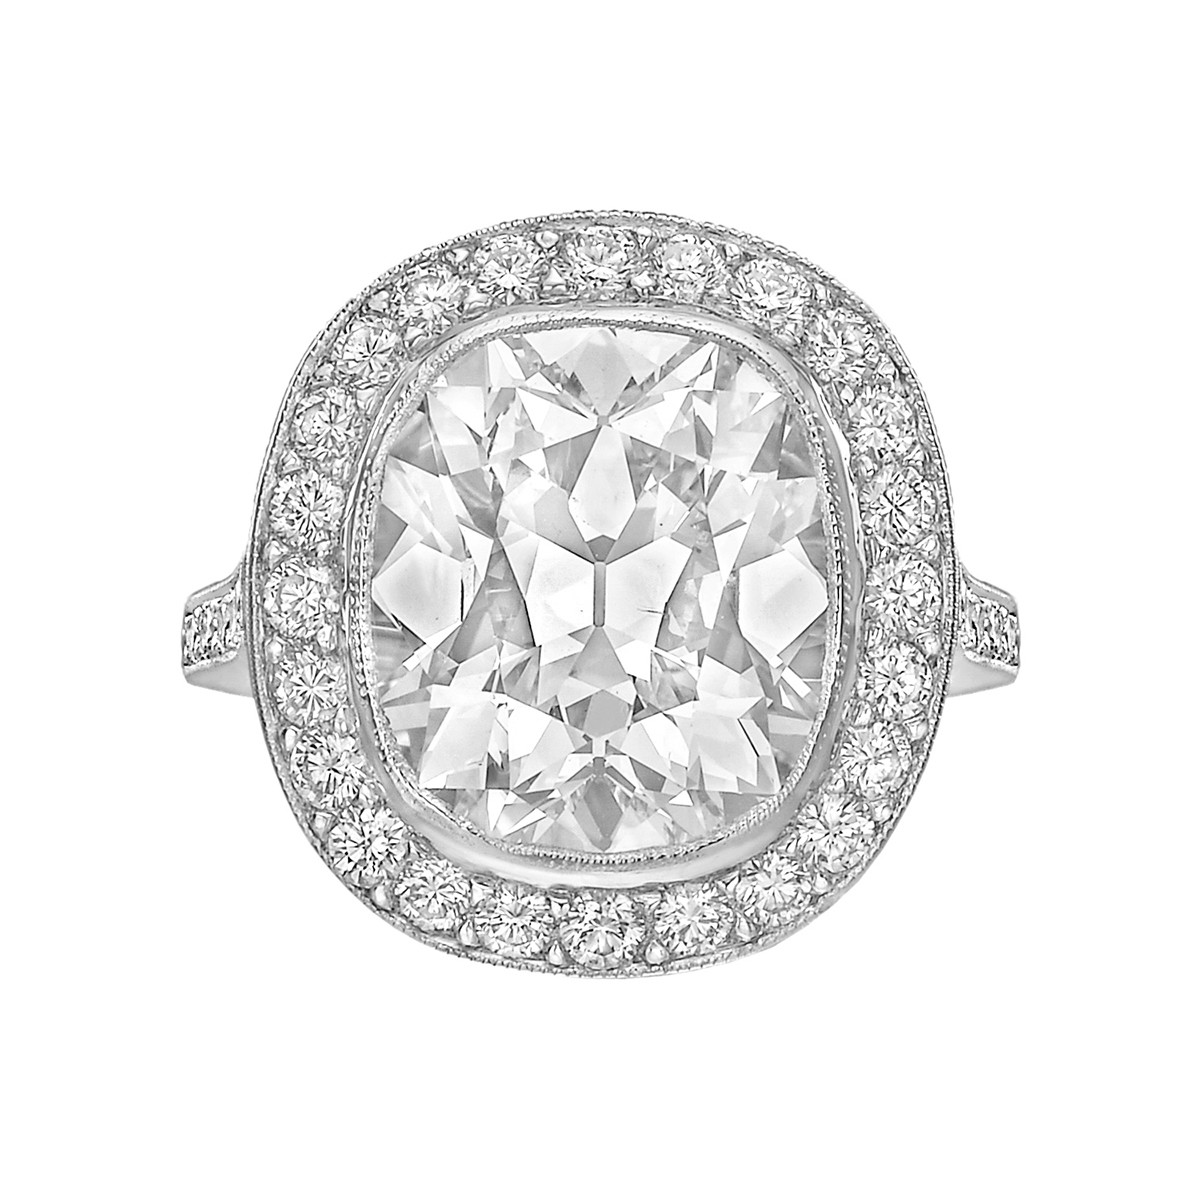 6.61ct Cushion-Cut Diamond Ring (D/VS1)